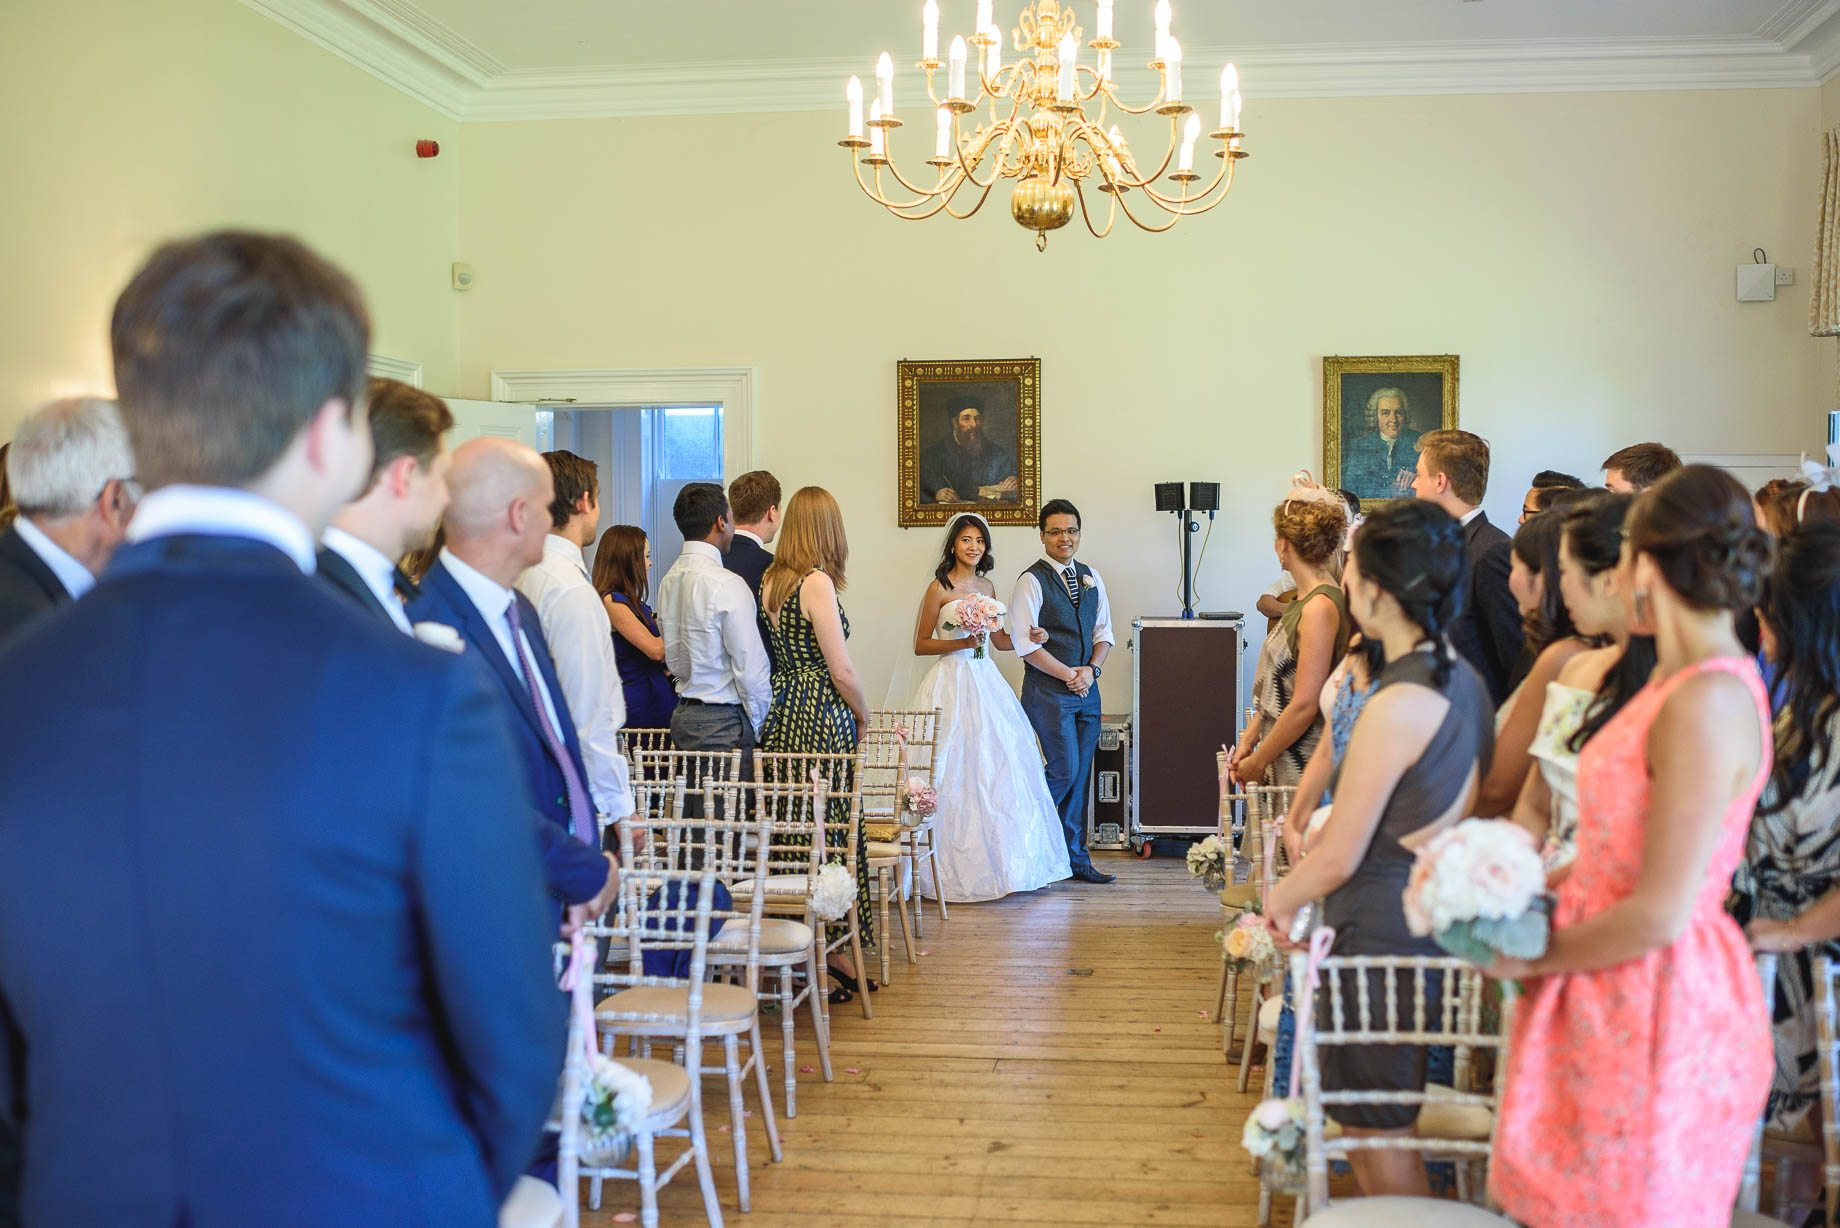 Kew Gardens wedding photography - Guy Collier Photography - Gloria and Frederik (39 of 173)